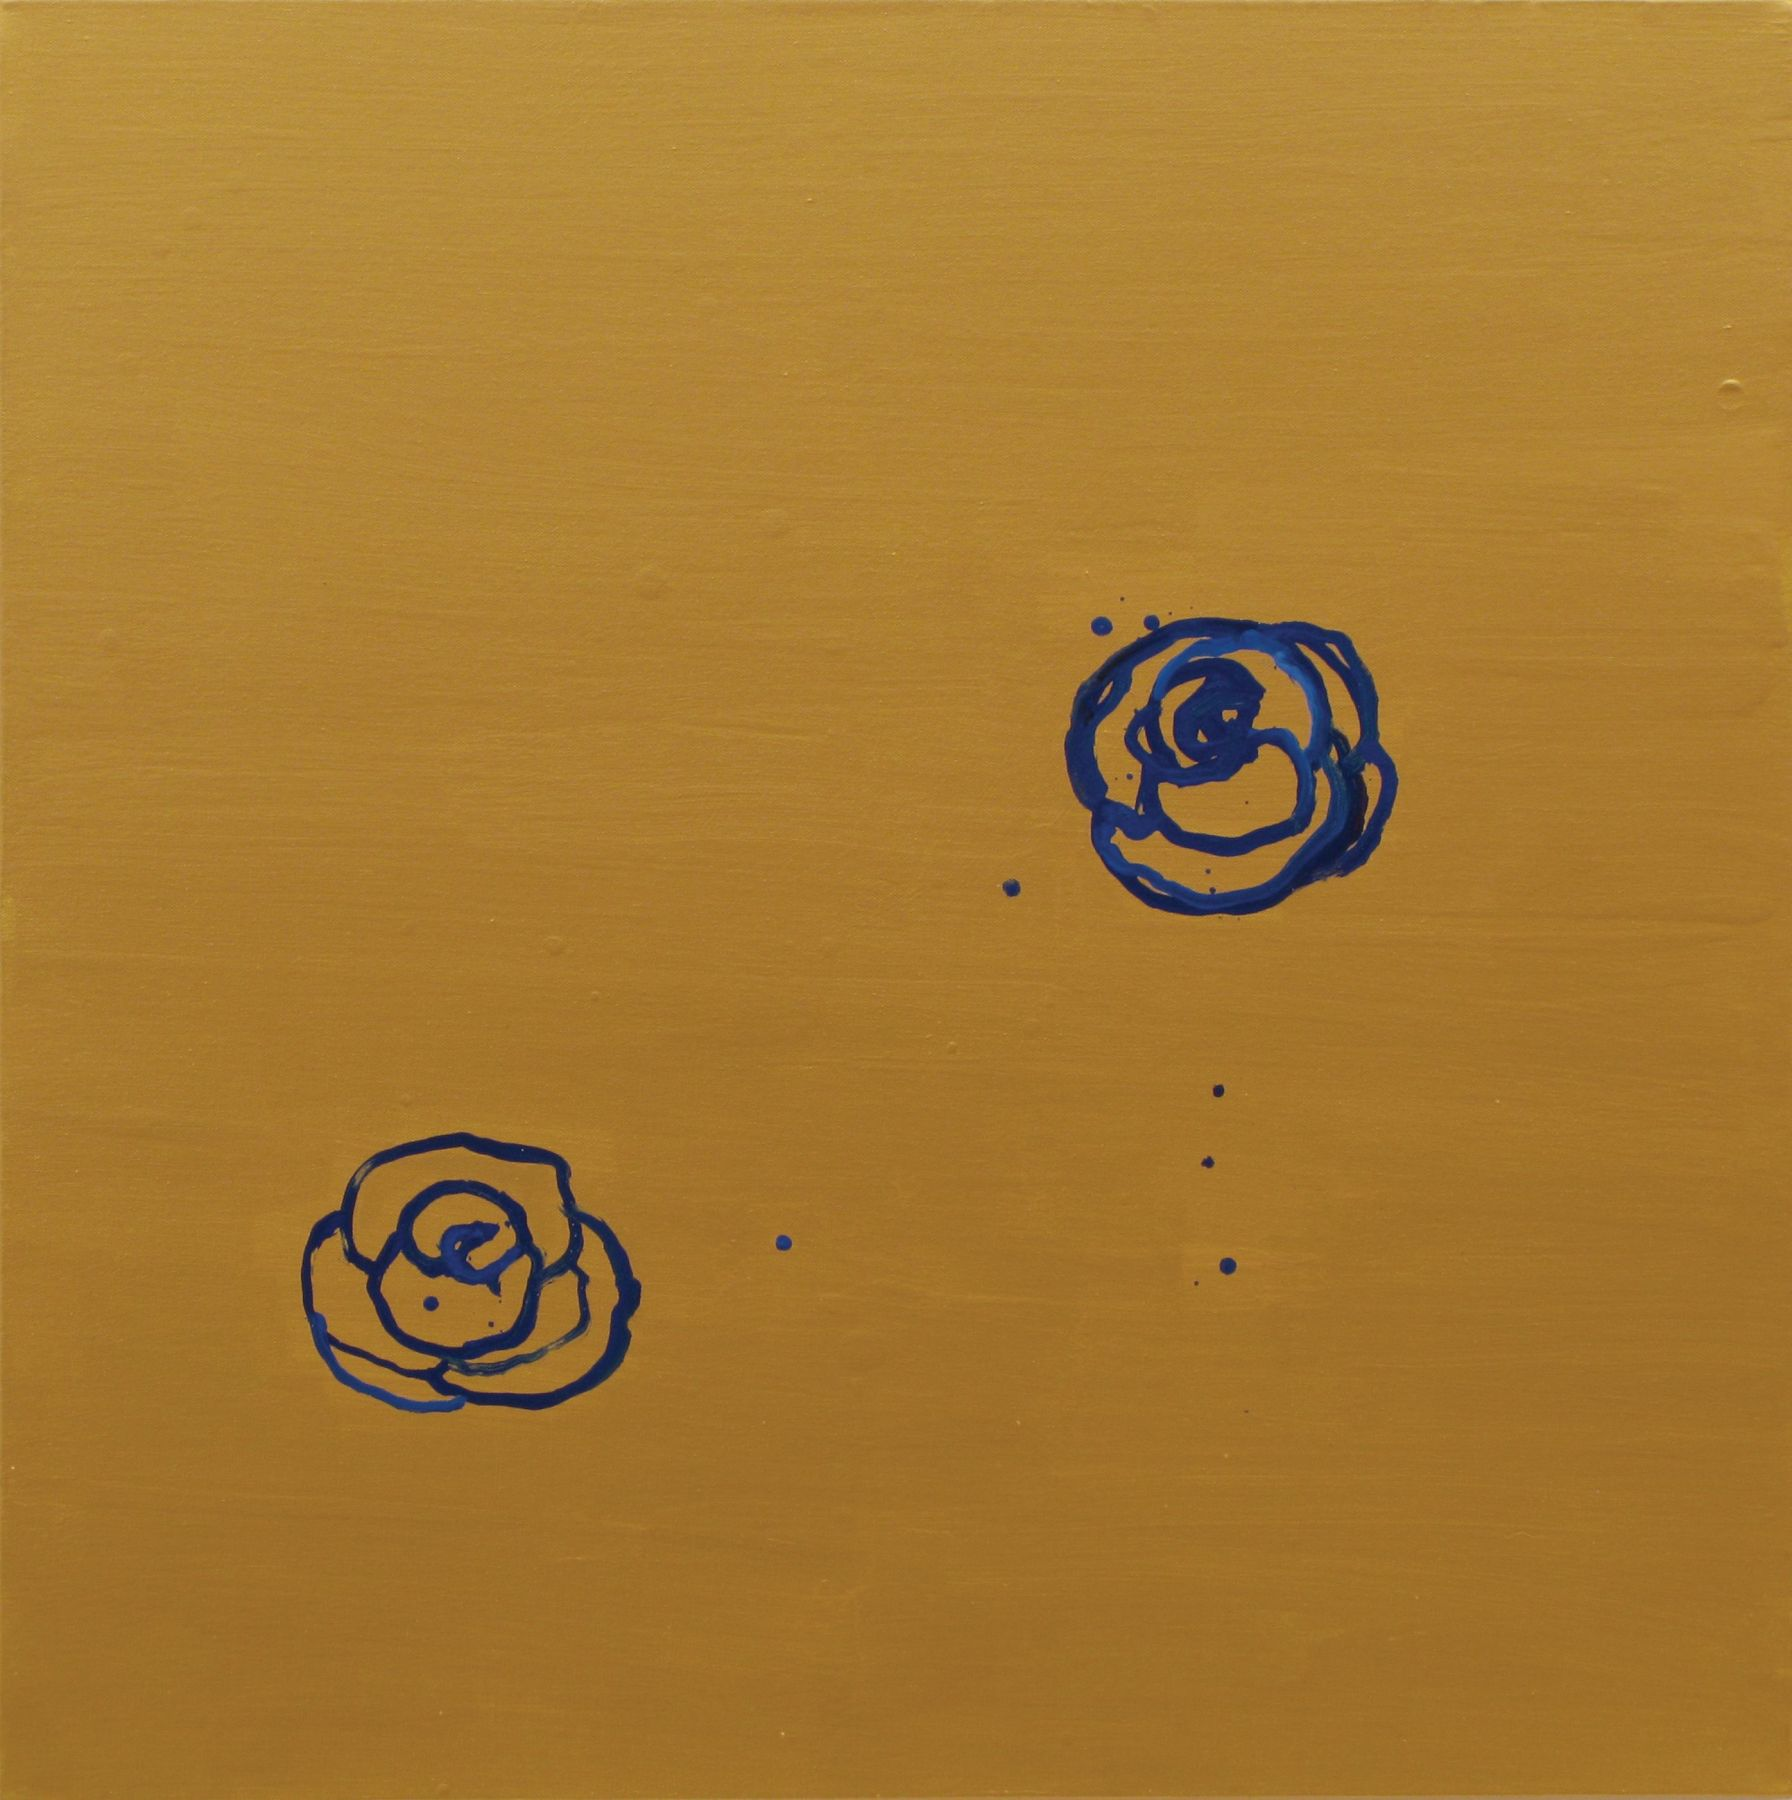 MARGARET EVANGELINE, Honey, Blue, Blue 2, 2010